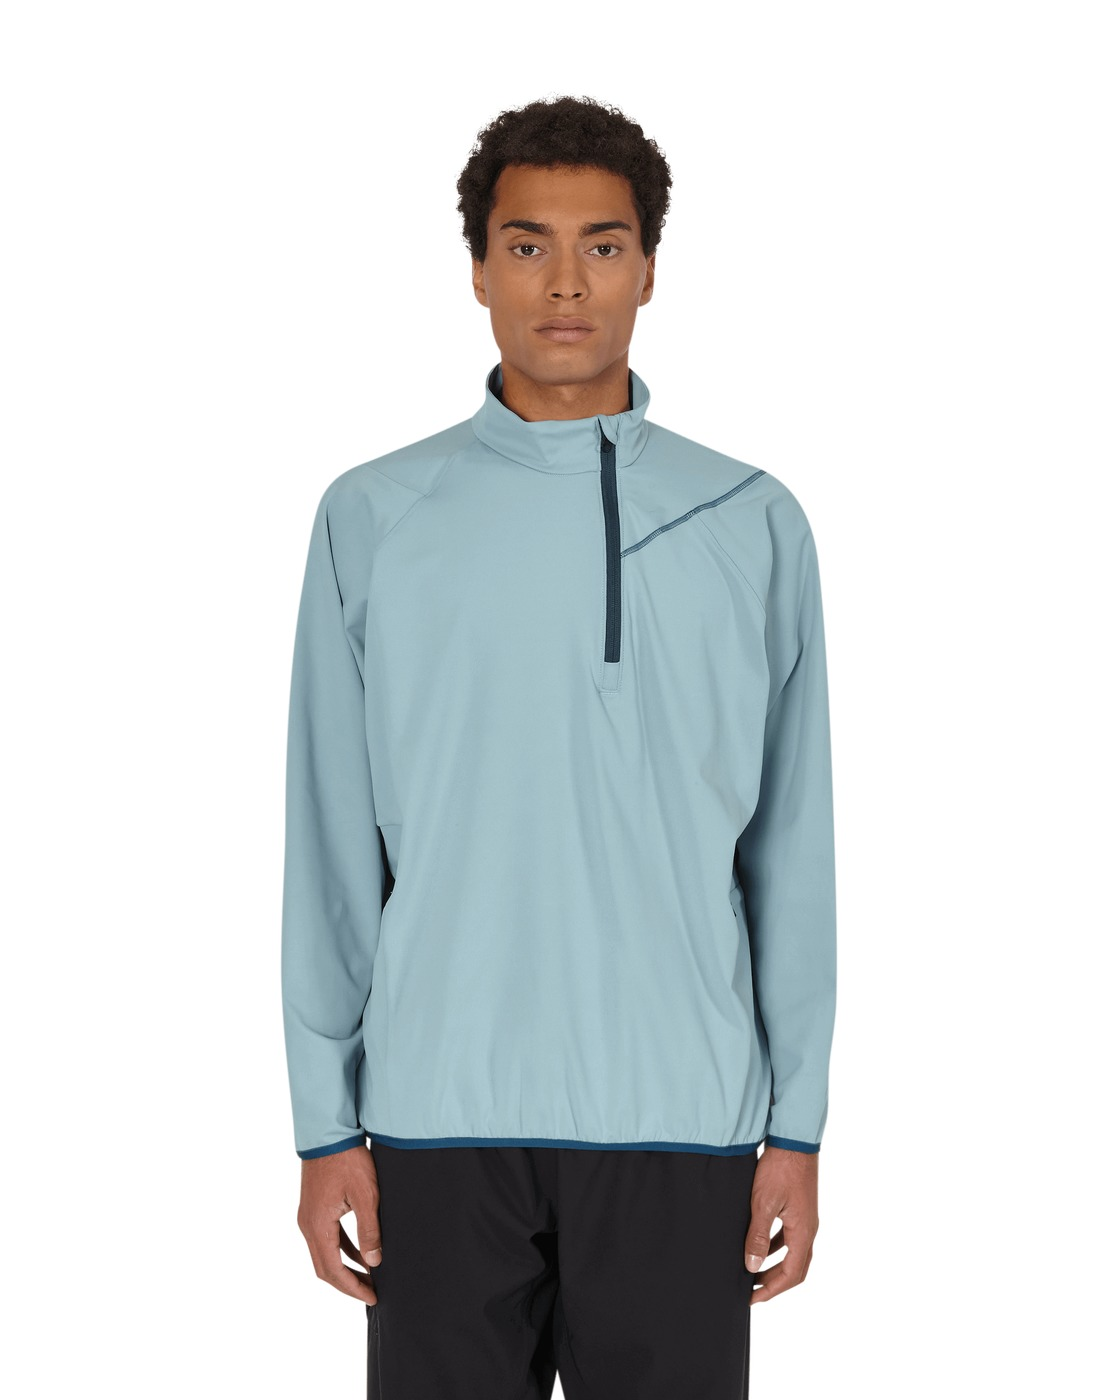 Photo: Asics Kiko Kostadinov Sweatshirt Light Steel